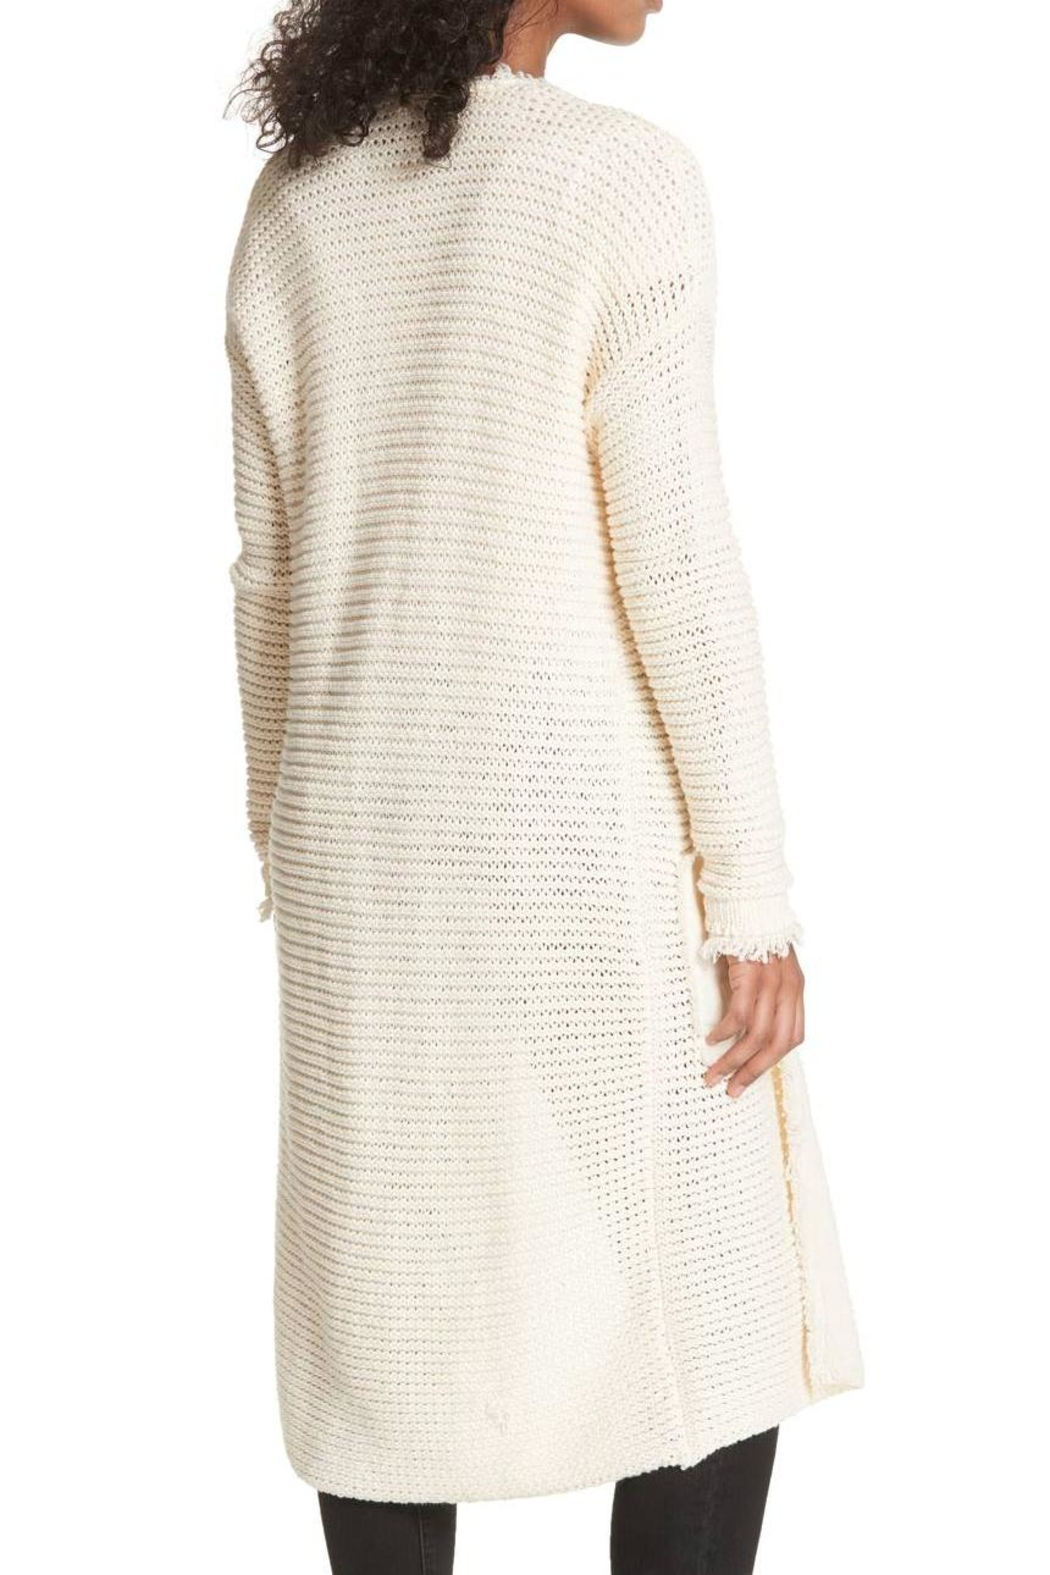 Free People Woodstock Longline Cardigan - Front Full Image